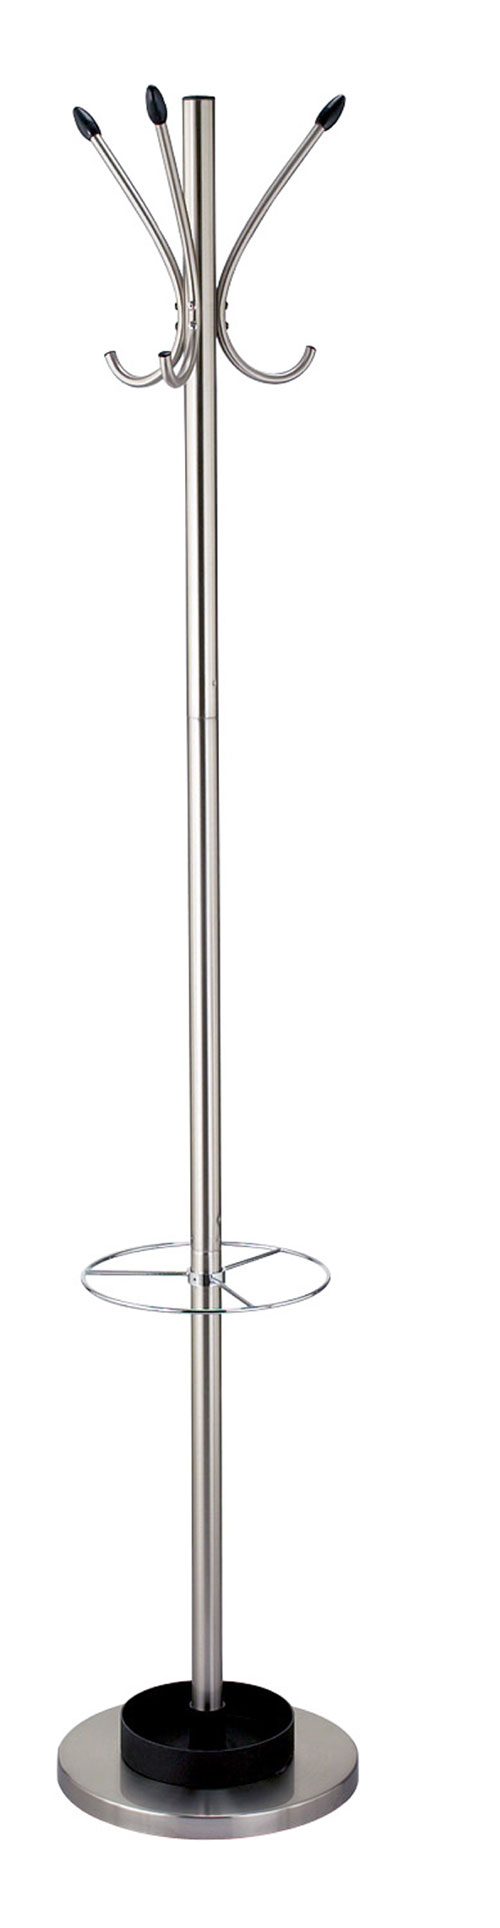 Adesso WK2058 Umbrella Stand/Coat Rack Steel 22